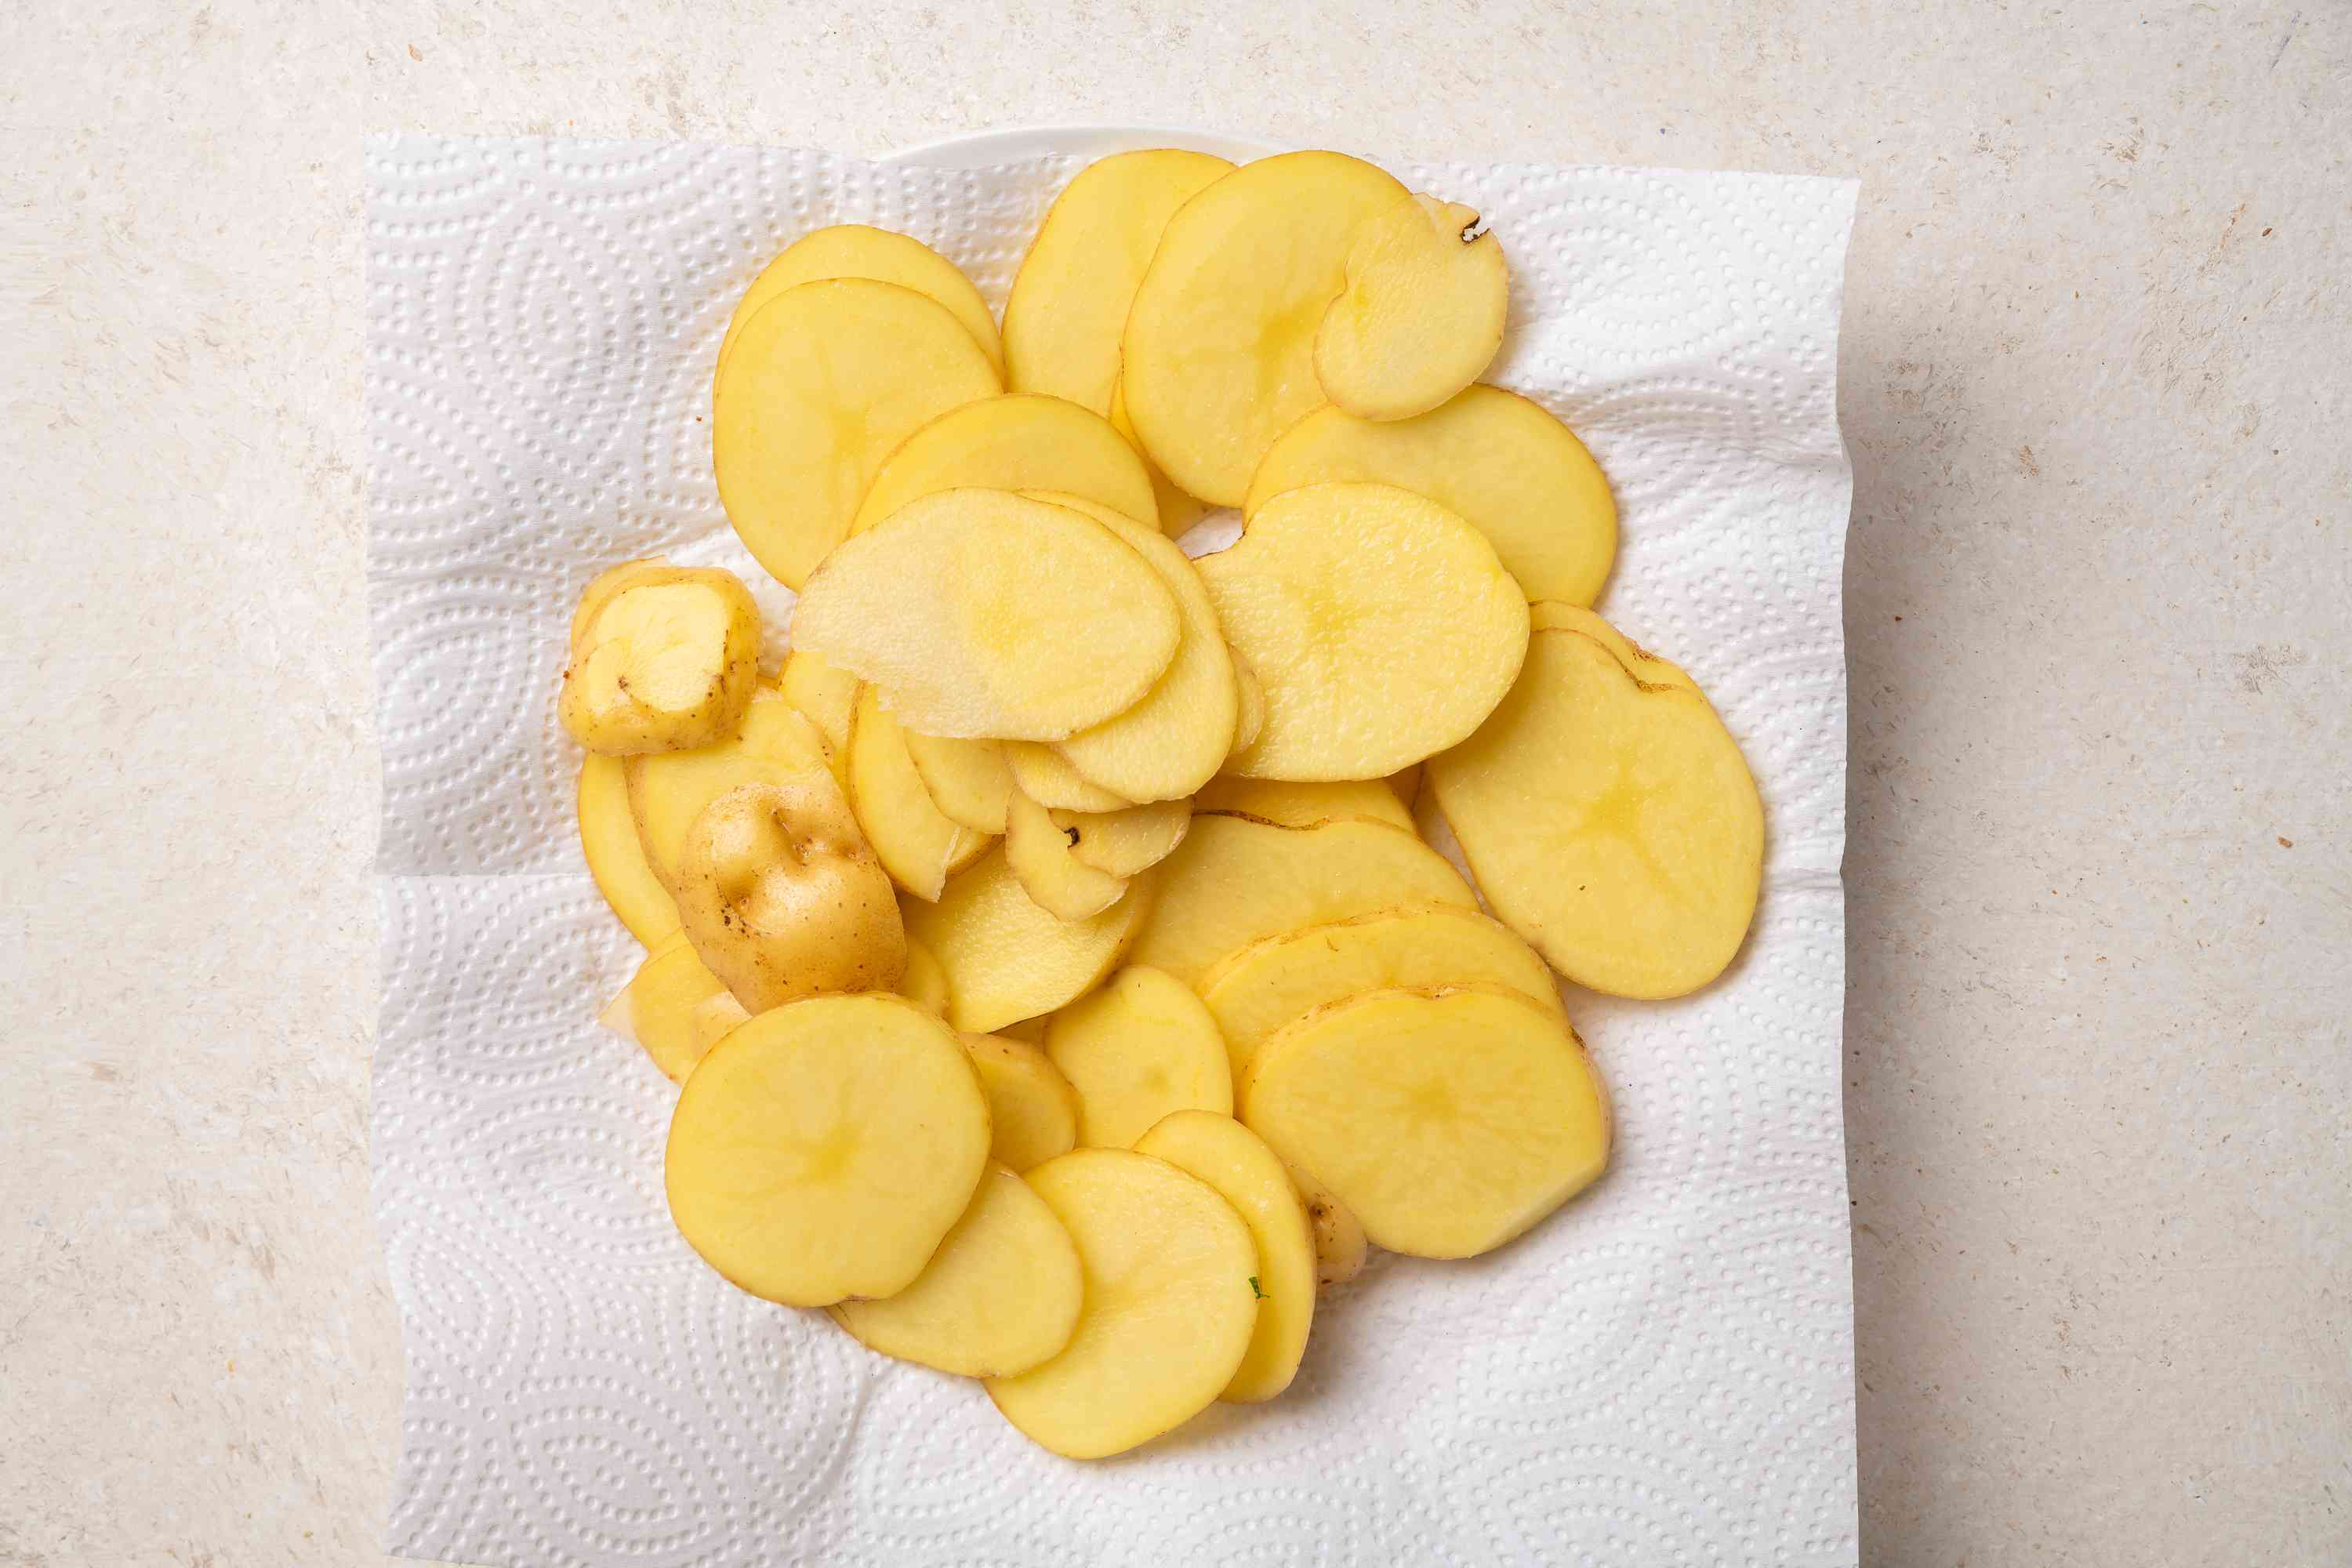 Thinly slice the potatoes and place them on a paper towel